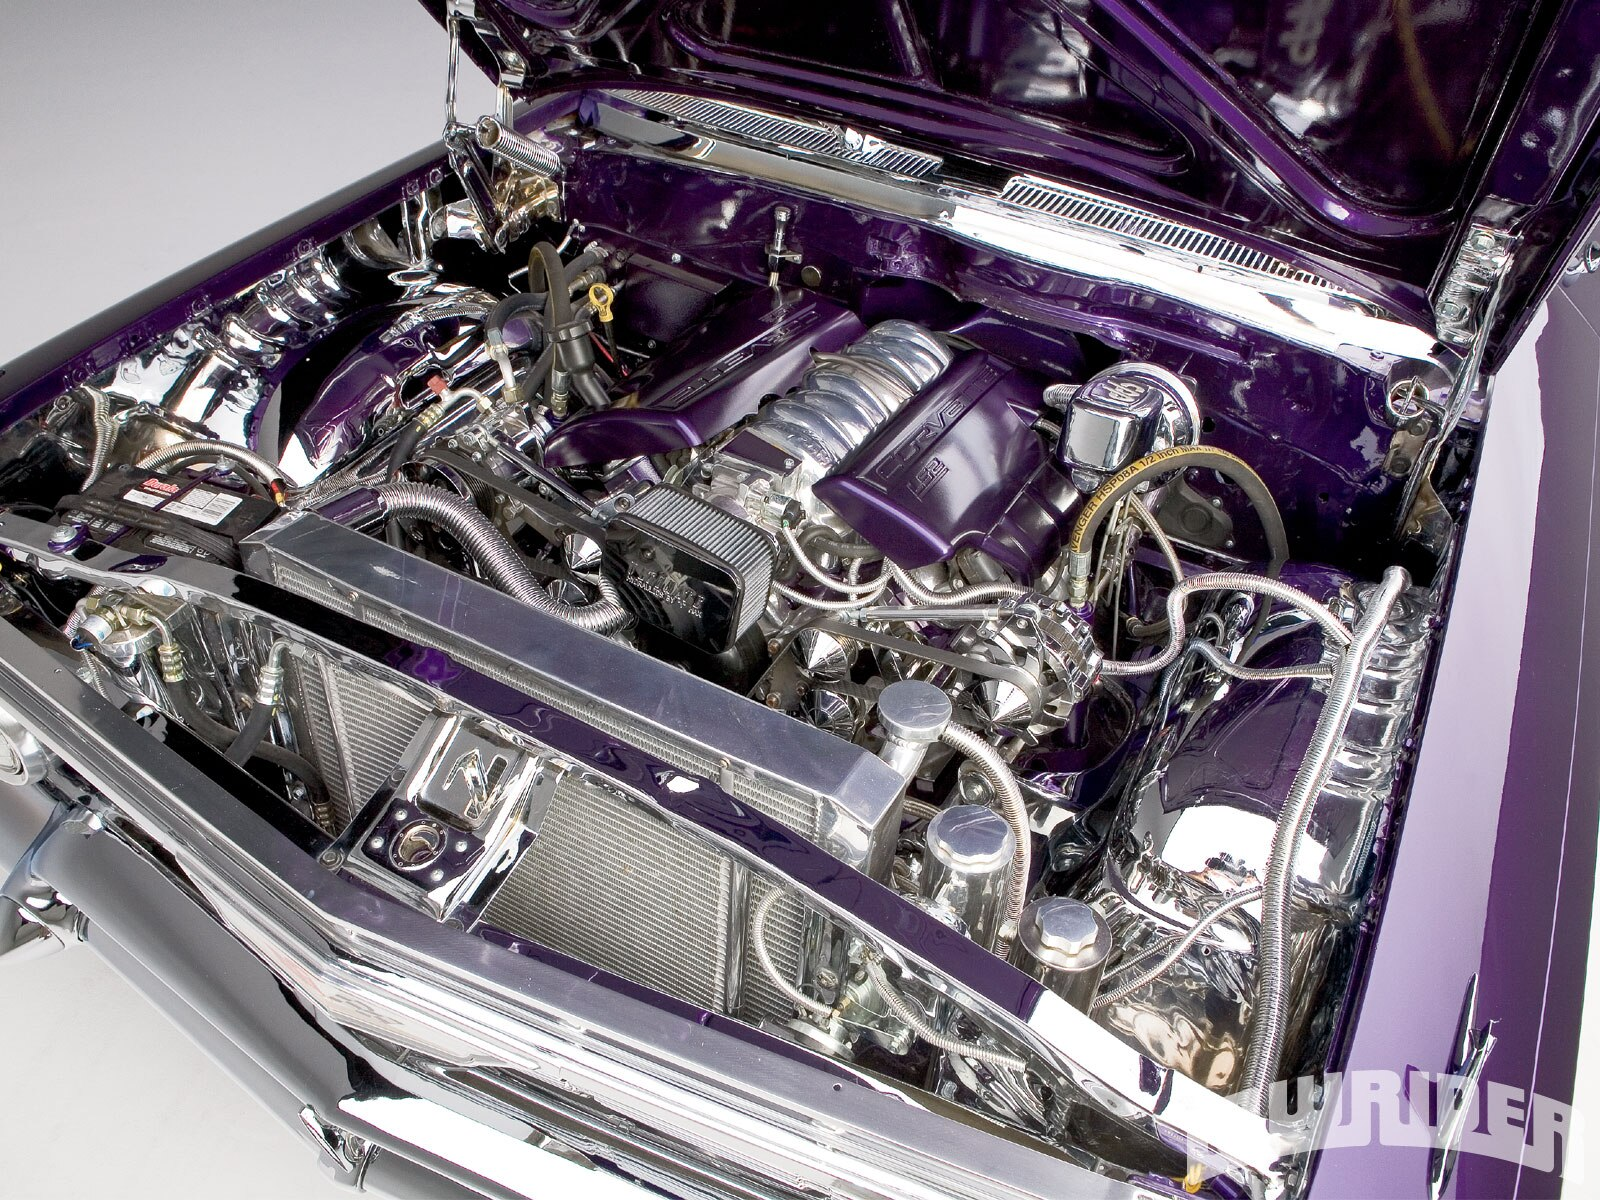 1103_lrmp_01_o-1961_chevrolet_impala-engine_bay2